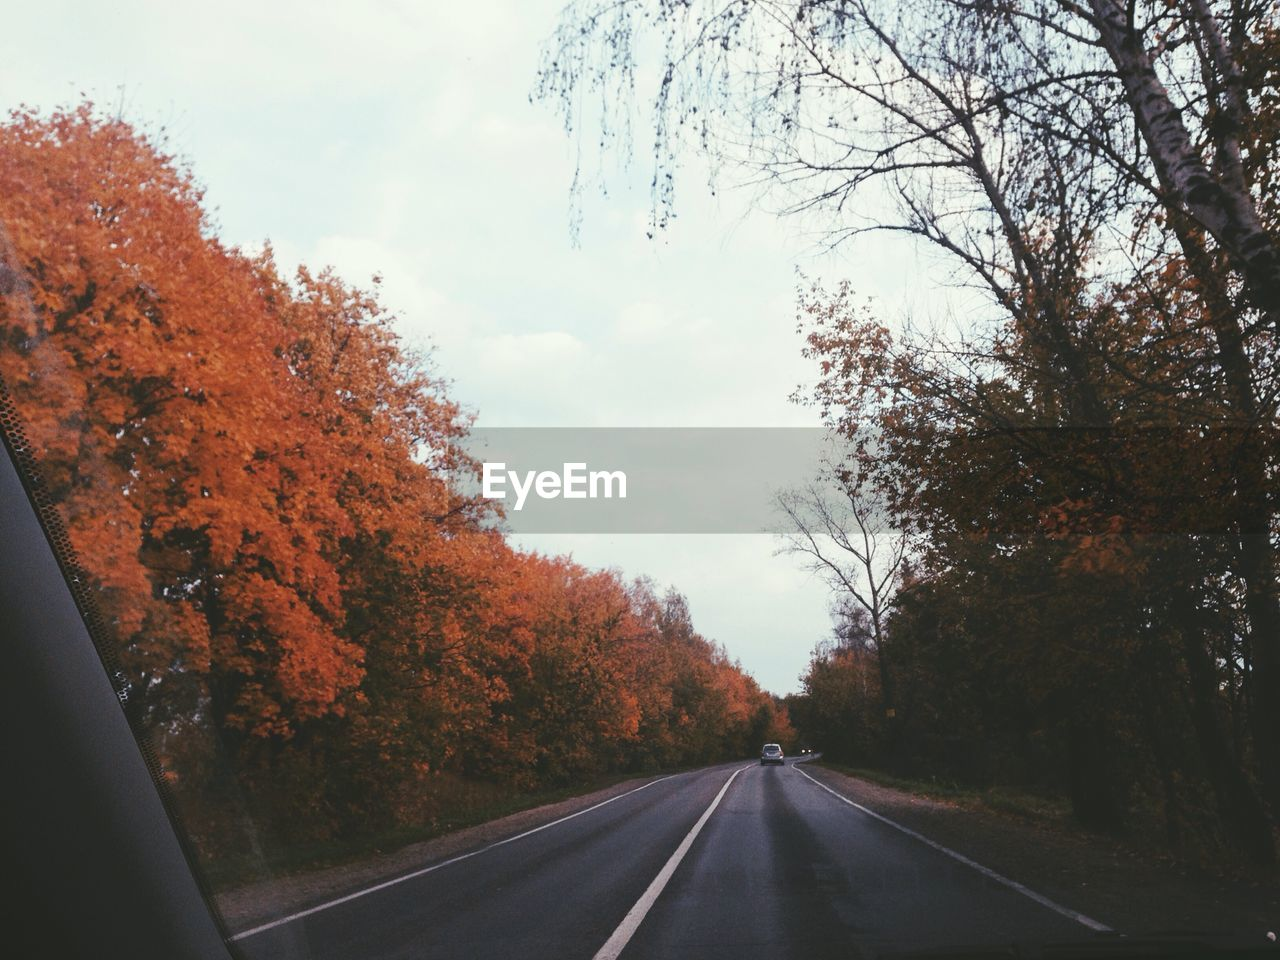 tree, road, the way forward, transportation, autumn, change, nature, sky, day, dividing line, car, no people, outdoors, leaf, beauty in nature, branch